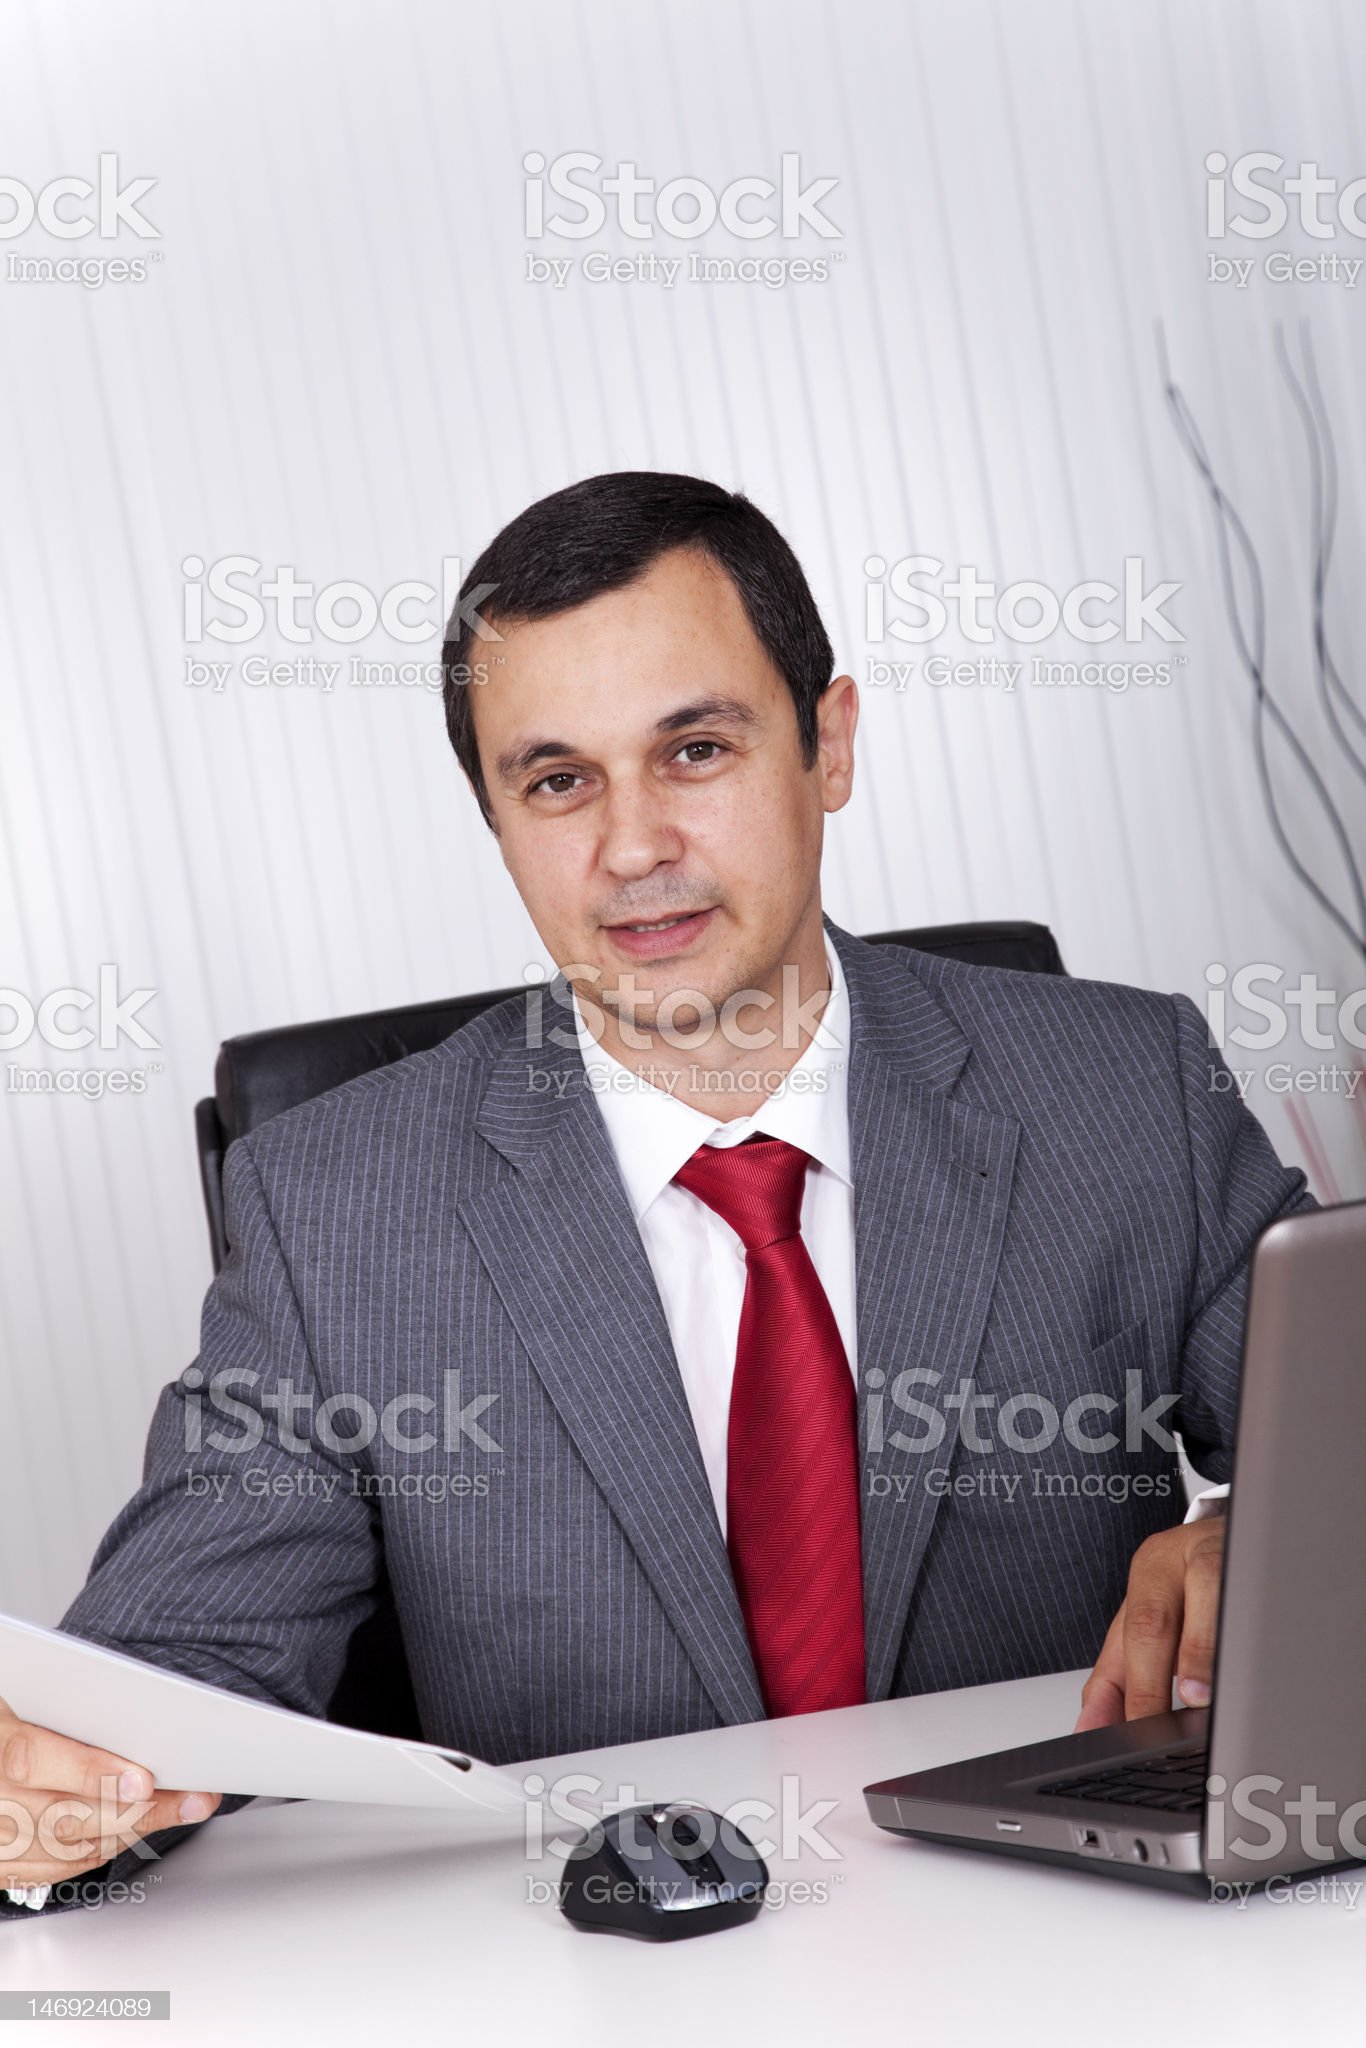 Mature businessman working at the office royalty-free stock photo